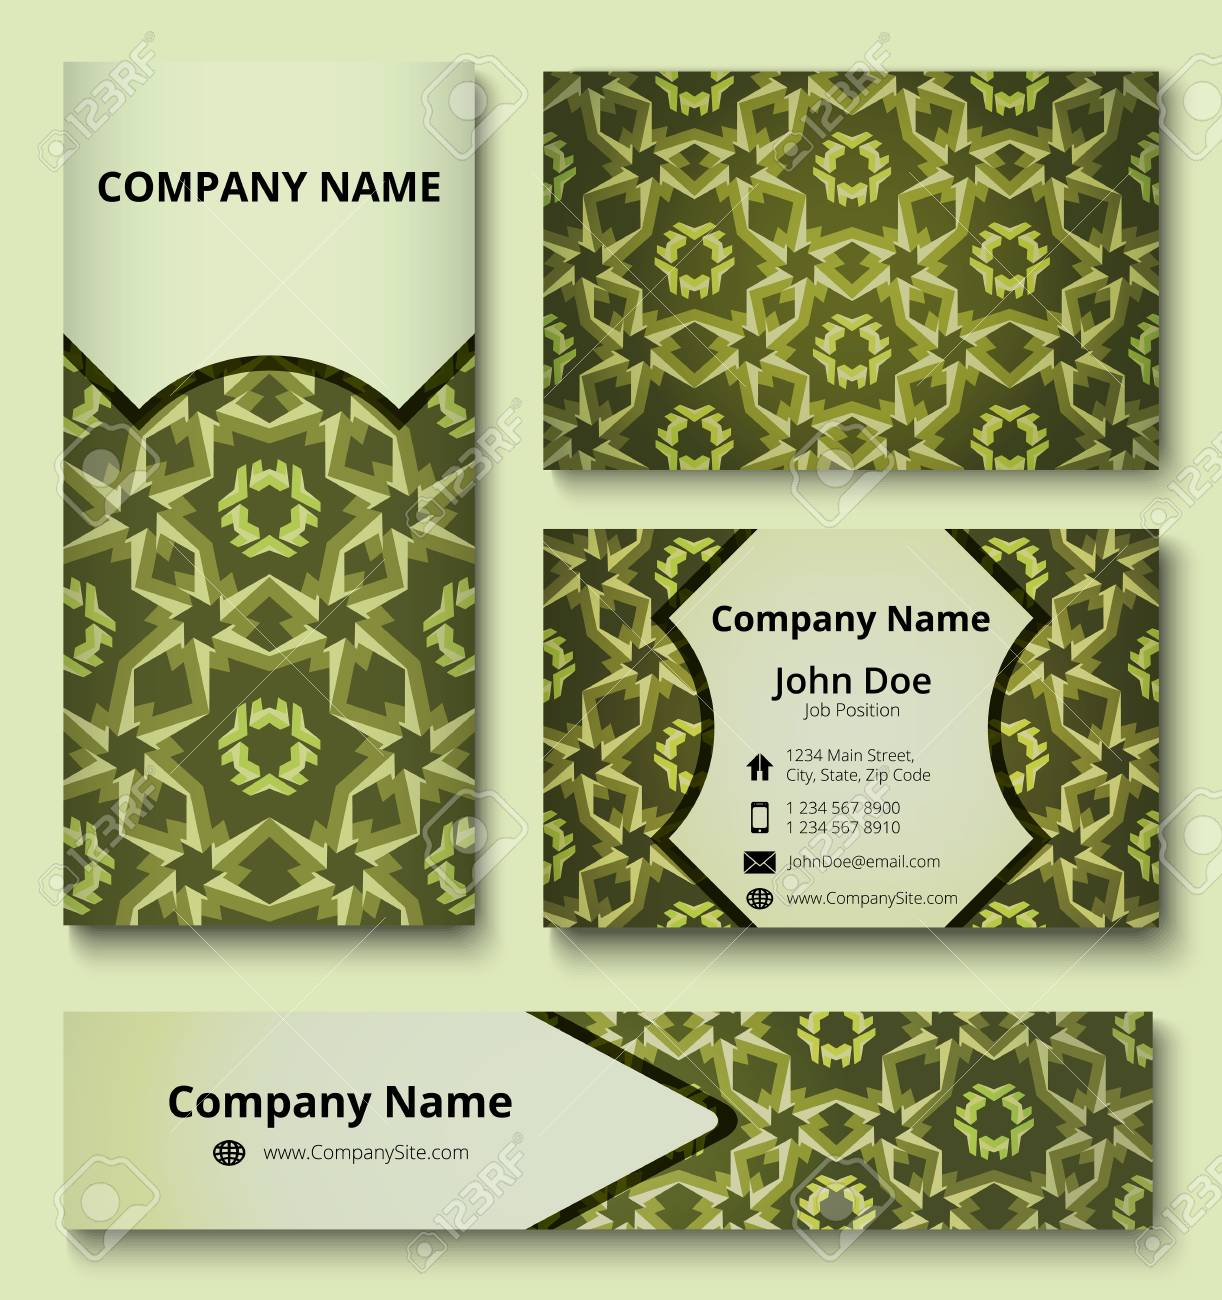 Modern Design Templates Set Of Business Card Banner And Invitation